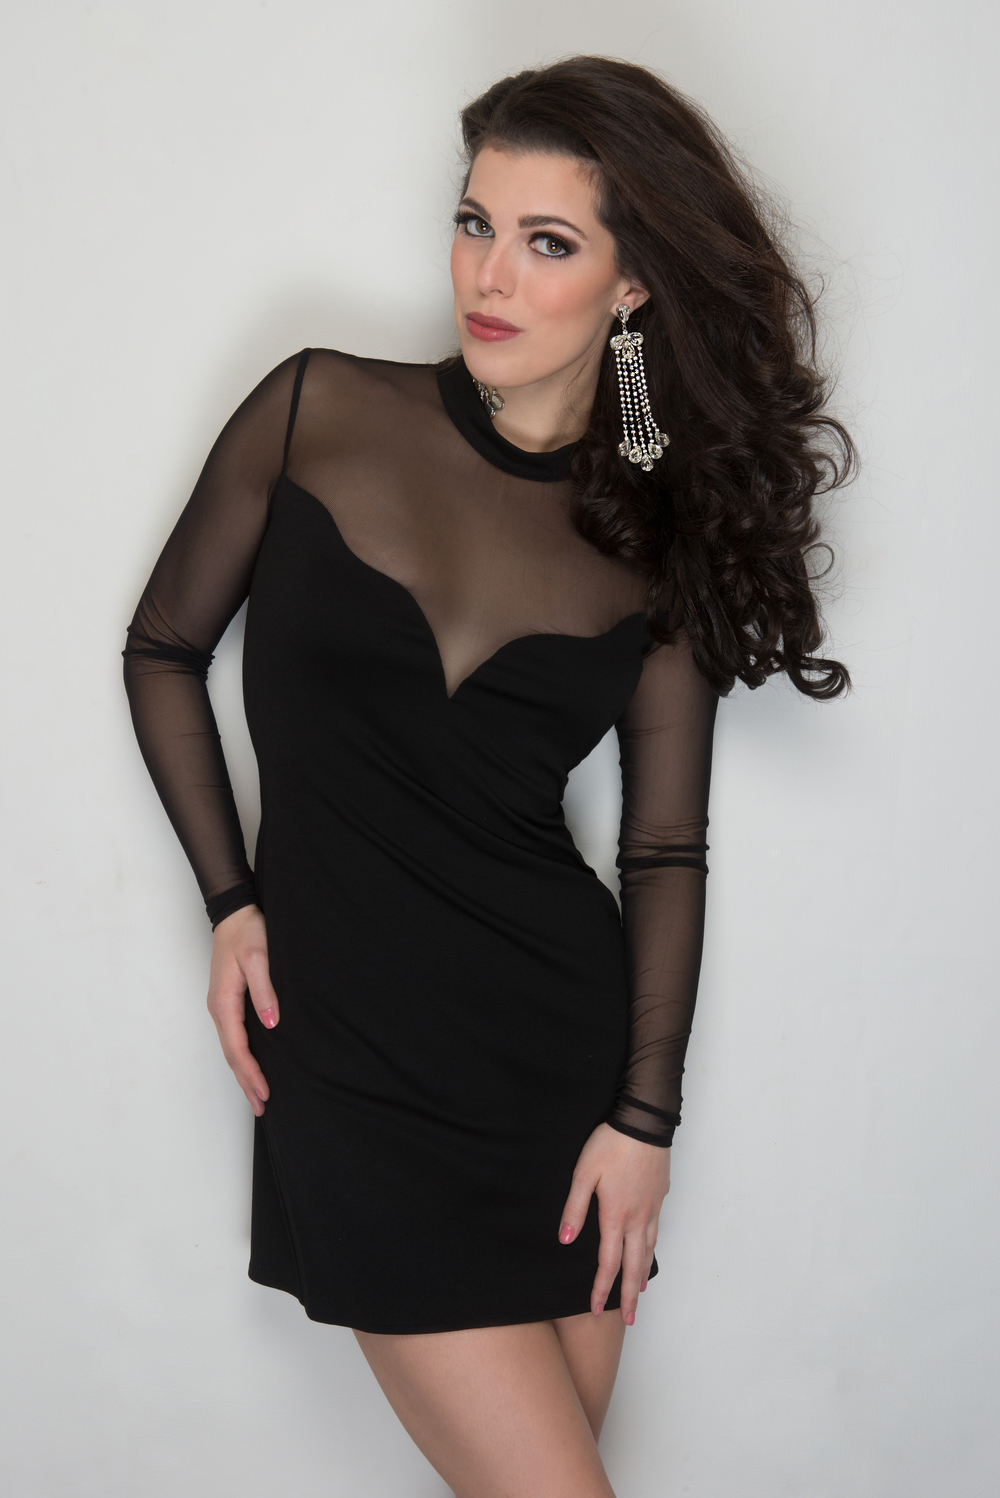 Benizo black dress.jpg